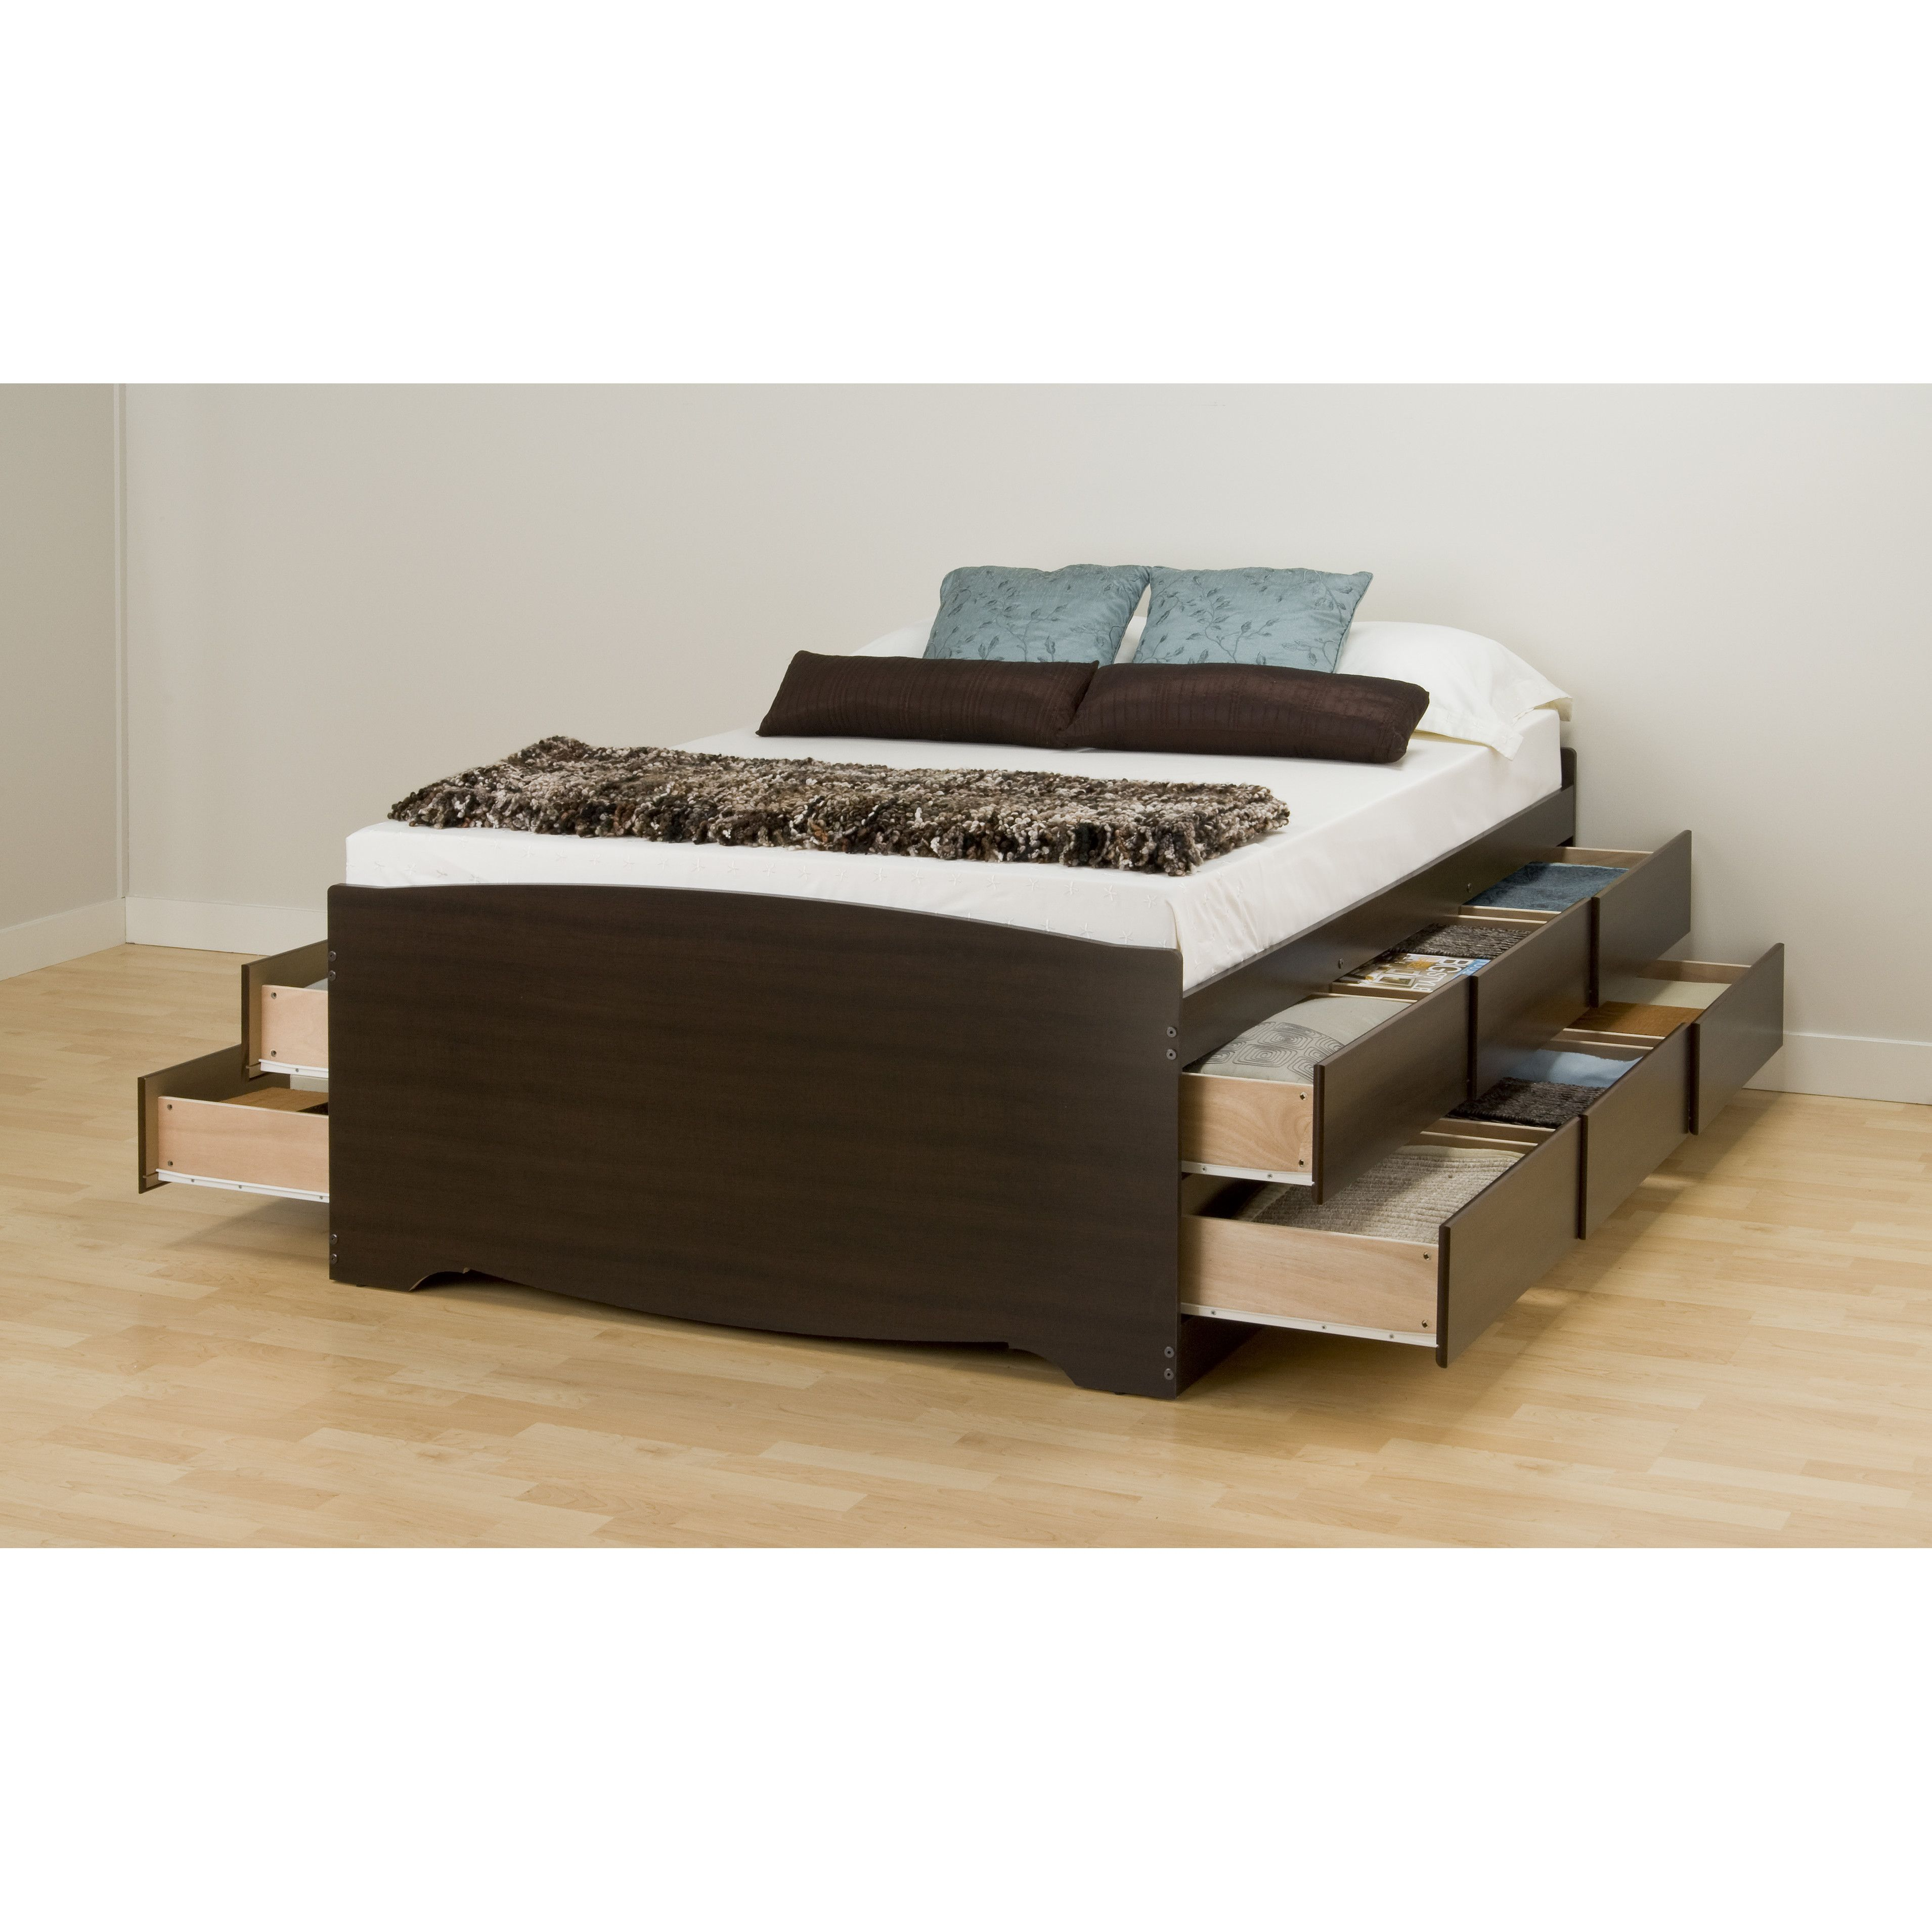 customer image zoomed bed with drawers storage queen platform black frame headboard